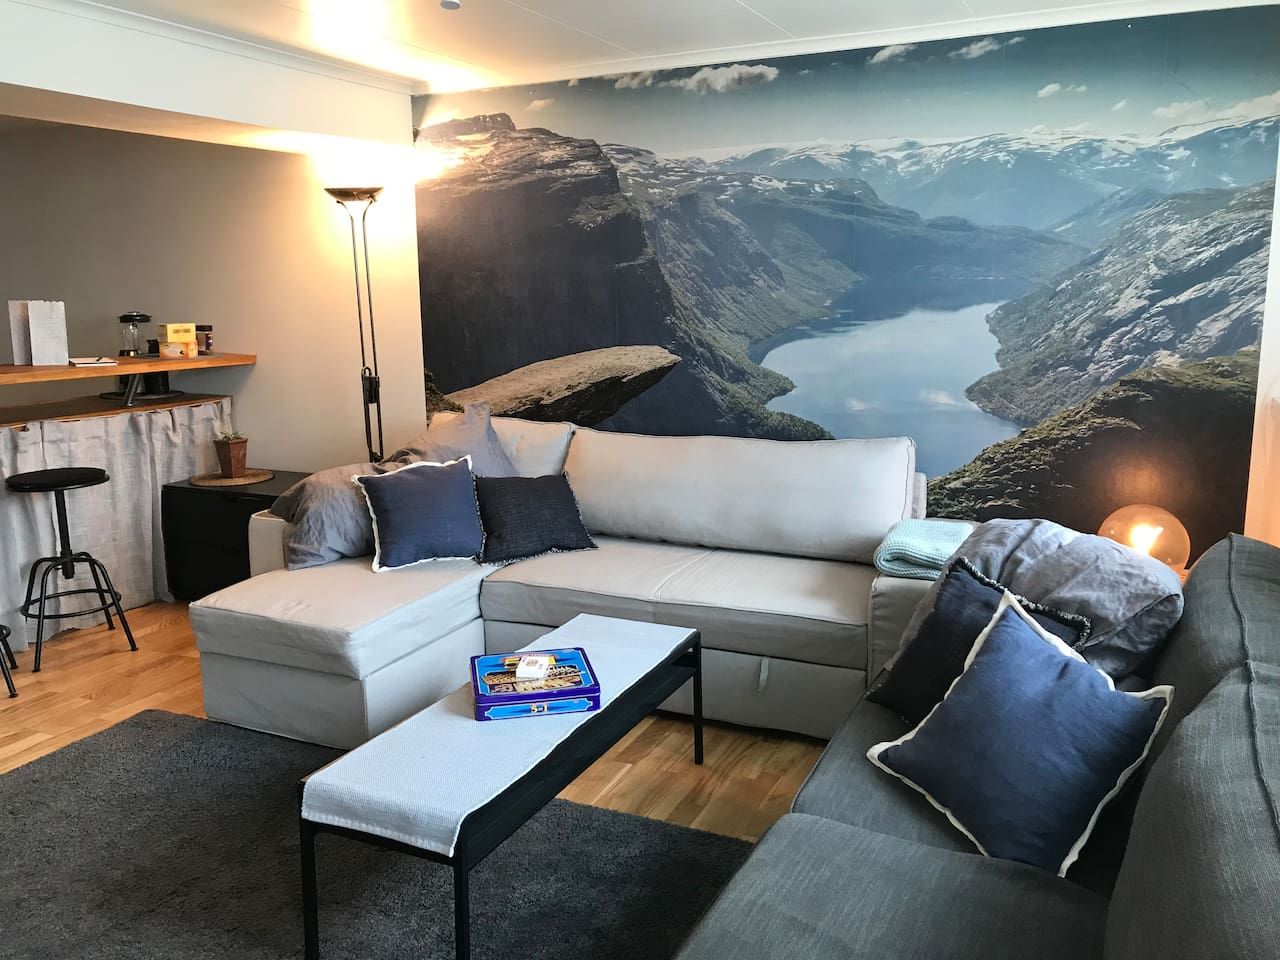 Foto wallpaper of trolltunga in the livingroom.